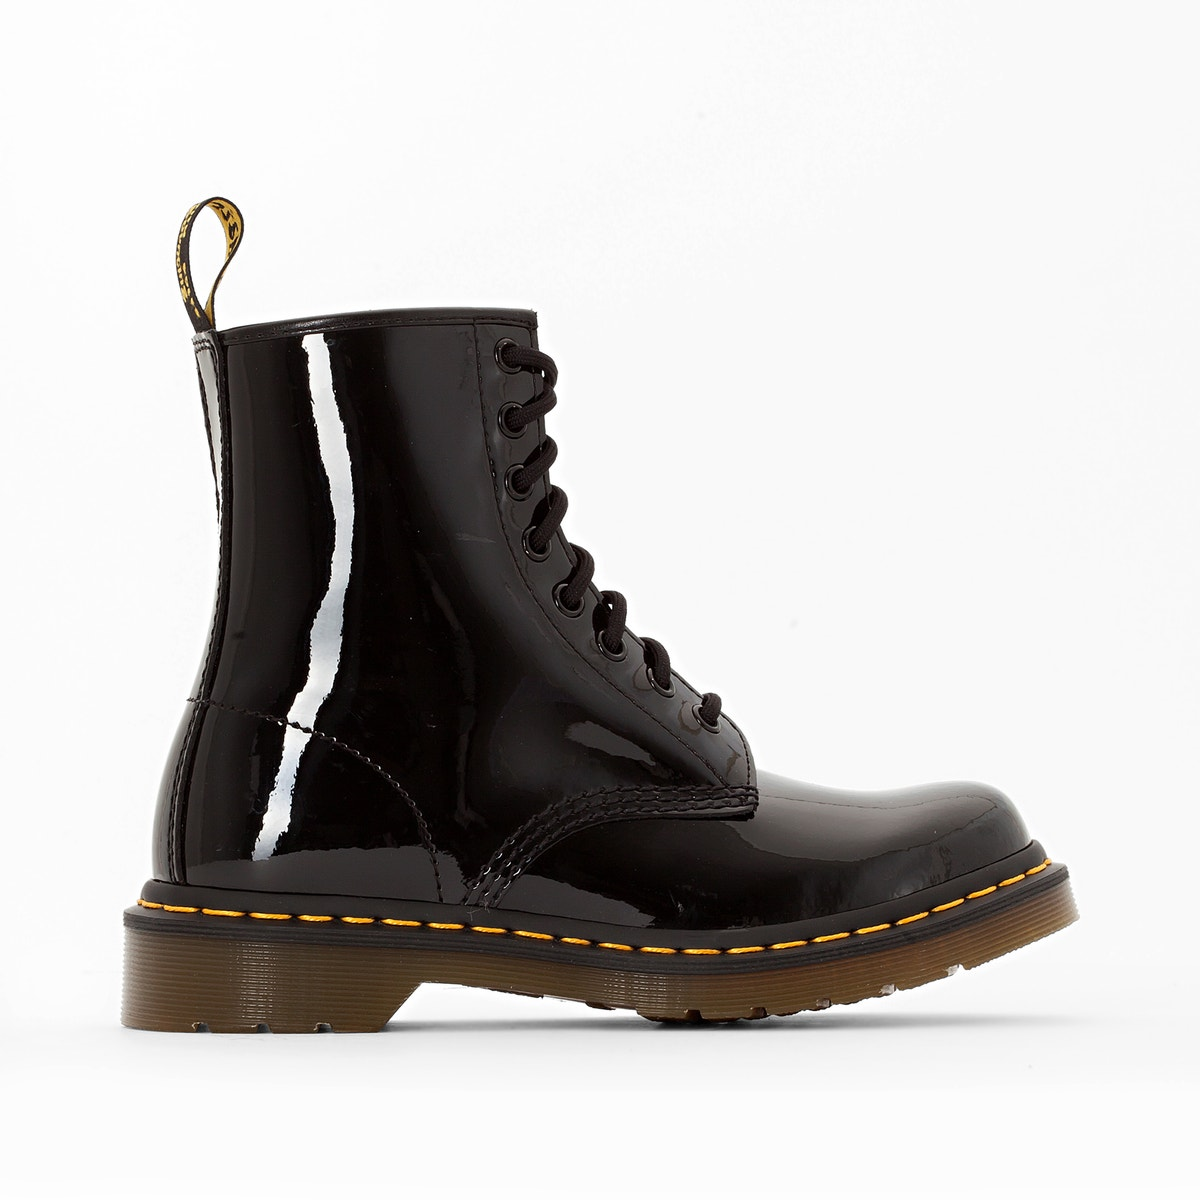 Dr Martens patent leather military boots